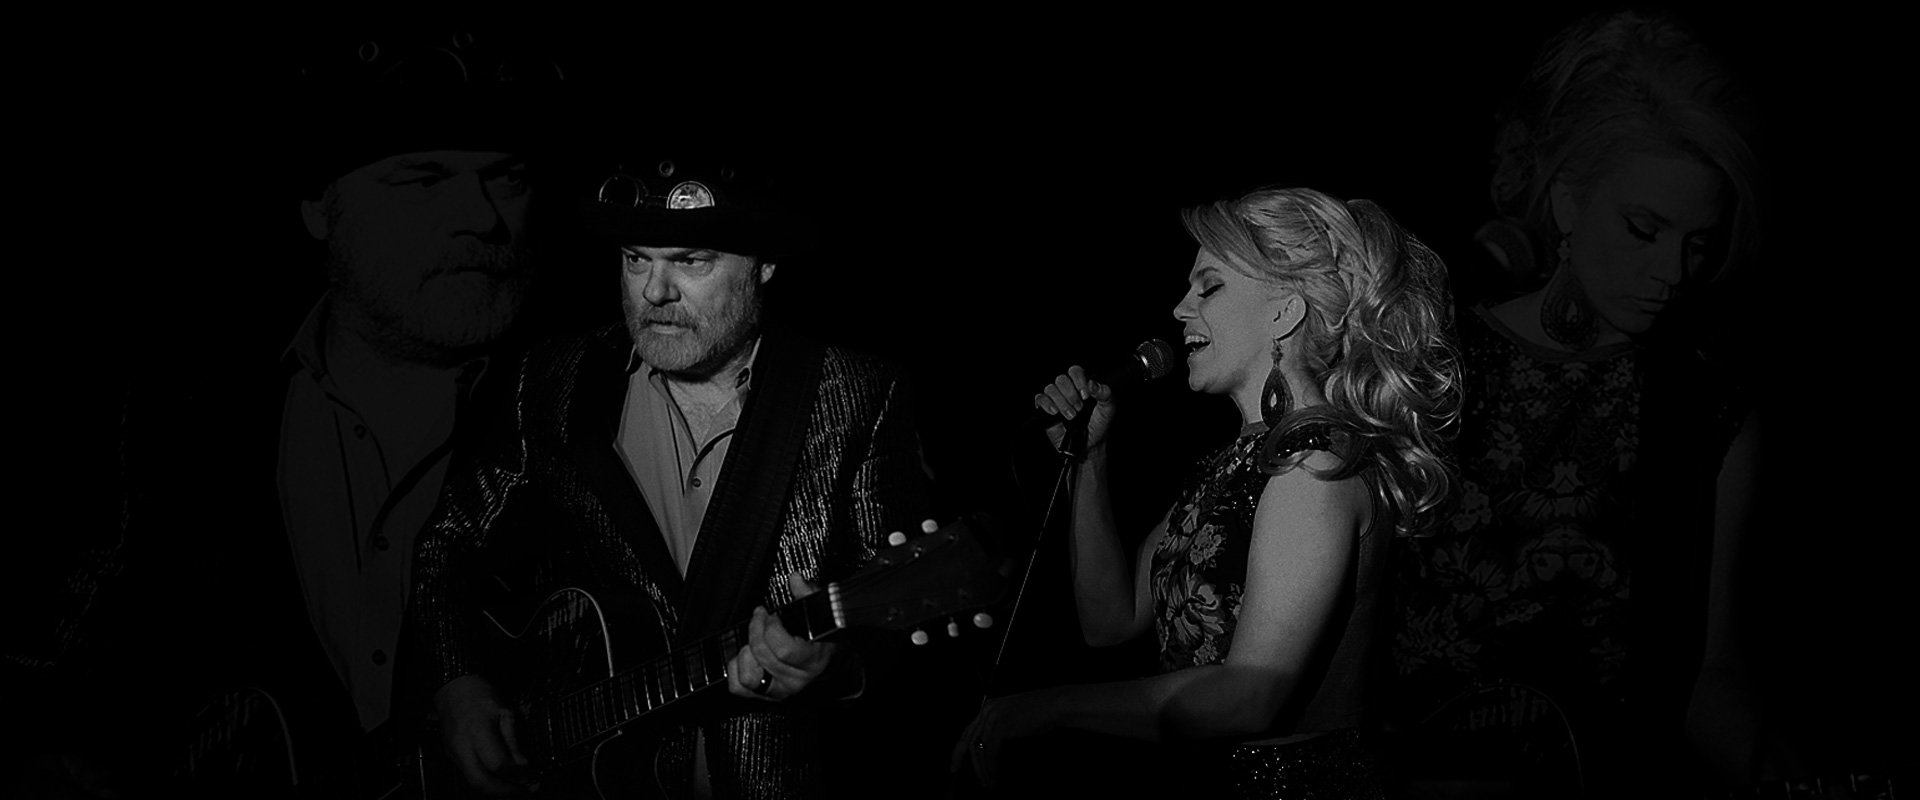 Fred Eaglesmith and Tif Ginn performing